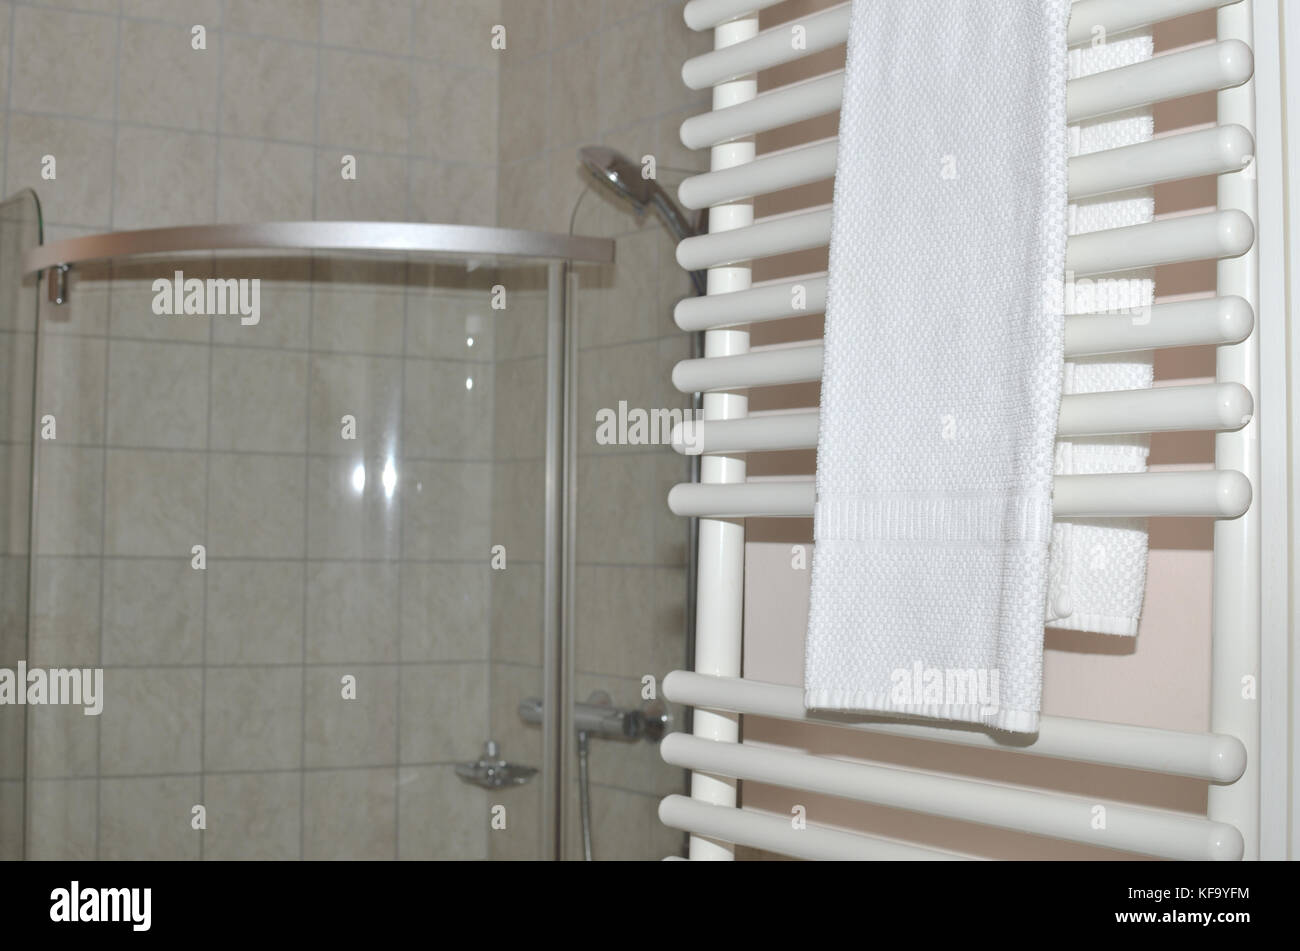 Beau Towel Dryer With White Towels In A Bathroom And A Shower Cabin Behind